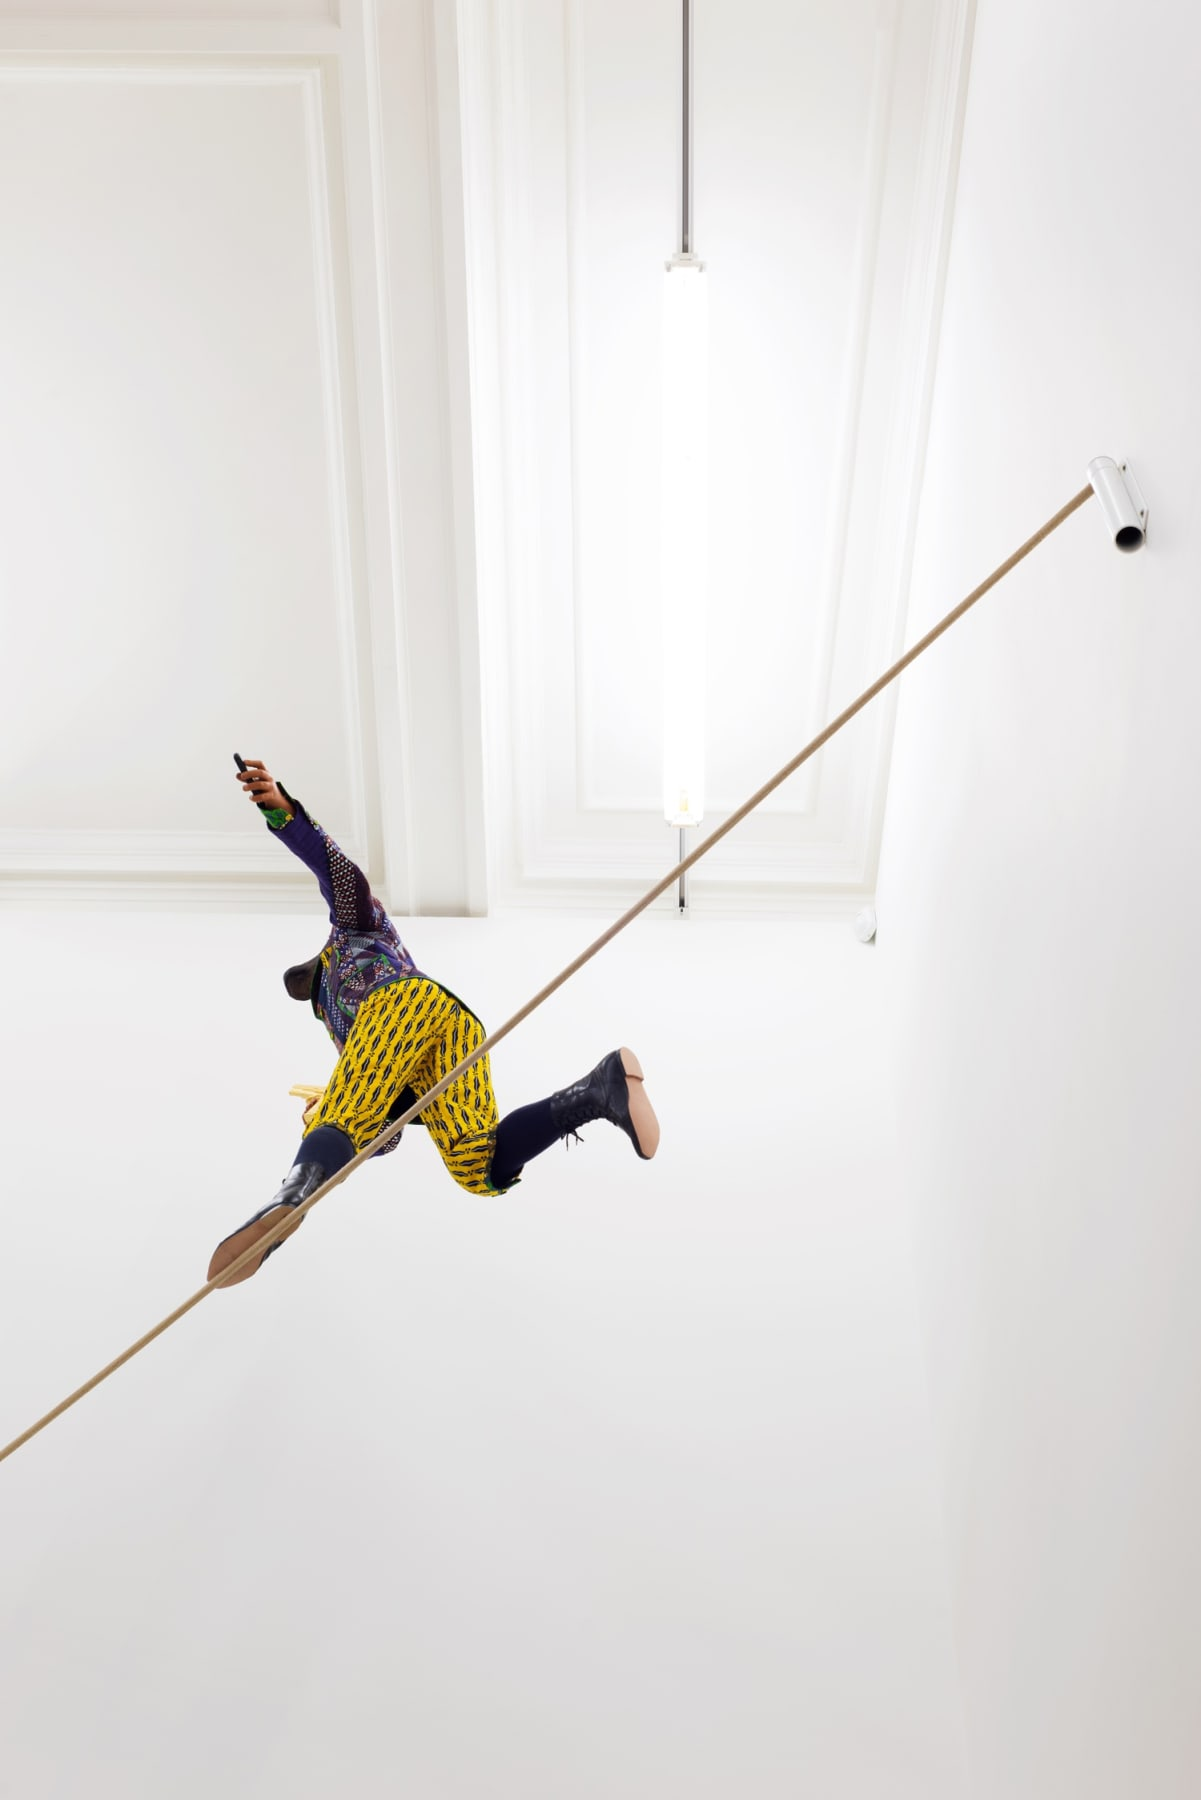 Installation view from underneath of miniature figure with a cow head and human body in wildly colored garments on a tightrope clutching a gun.